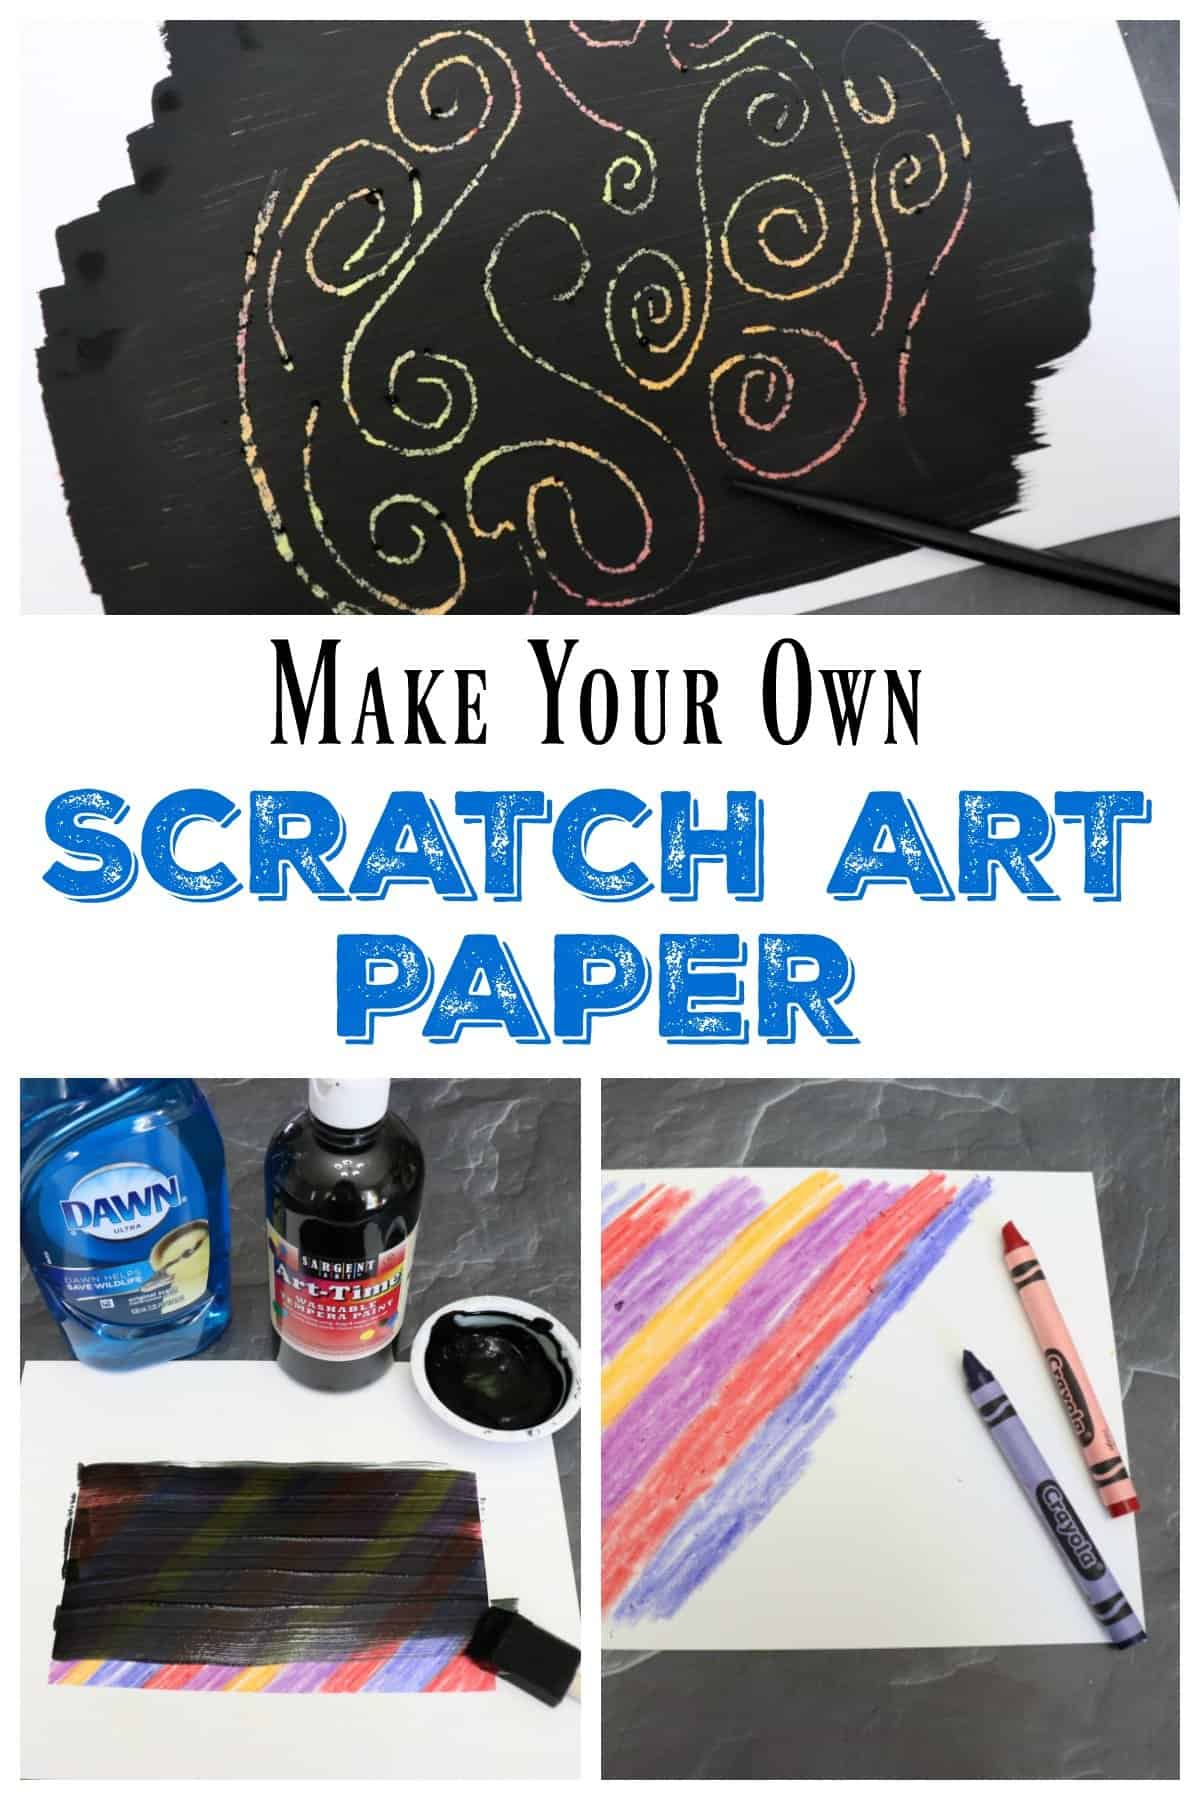 Mak scratch art paper at home with these simple supplies and tutorial